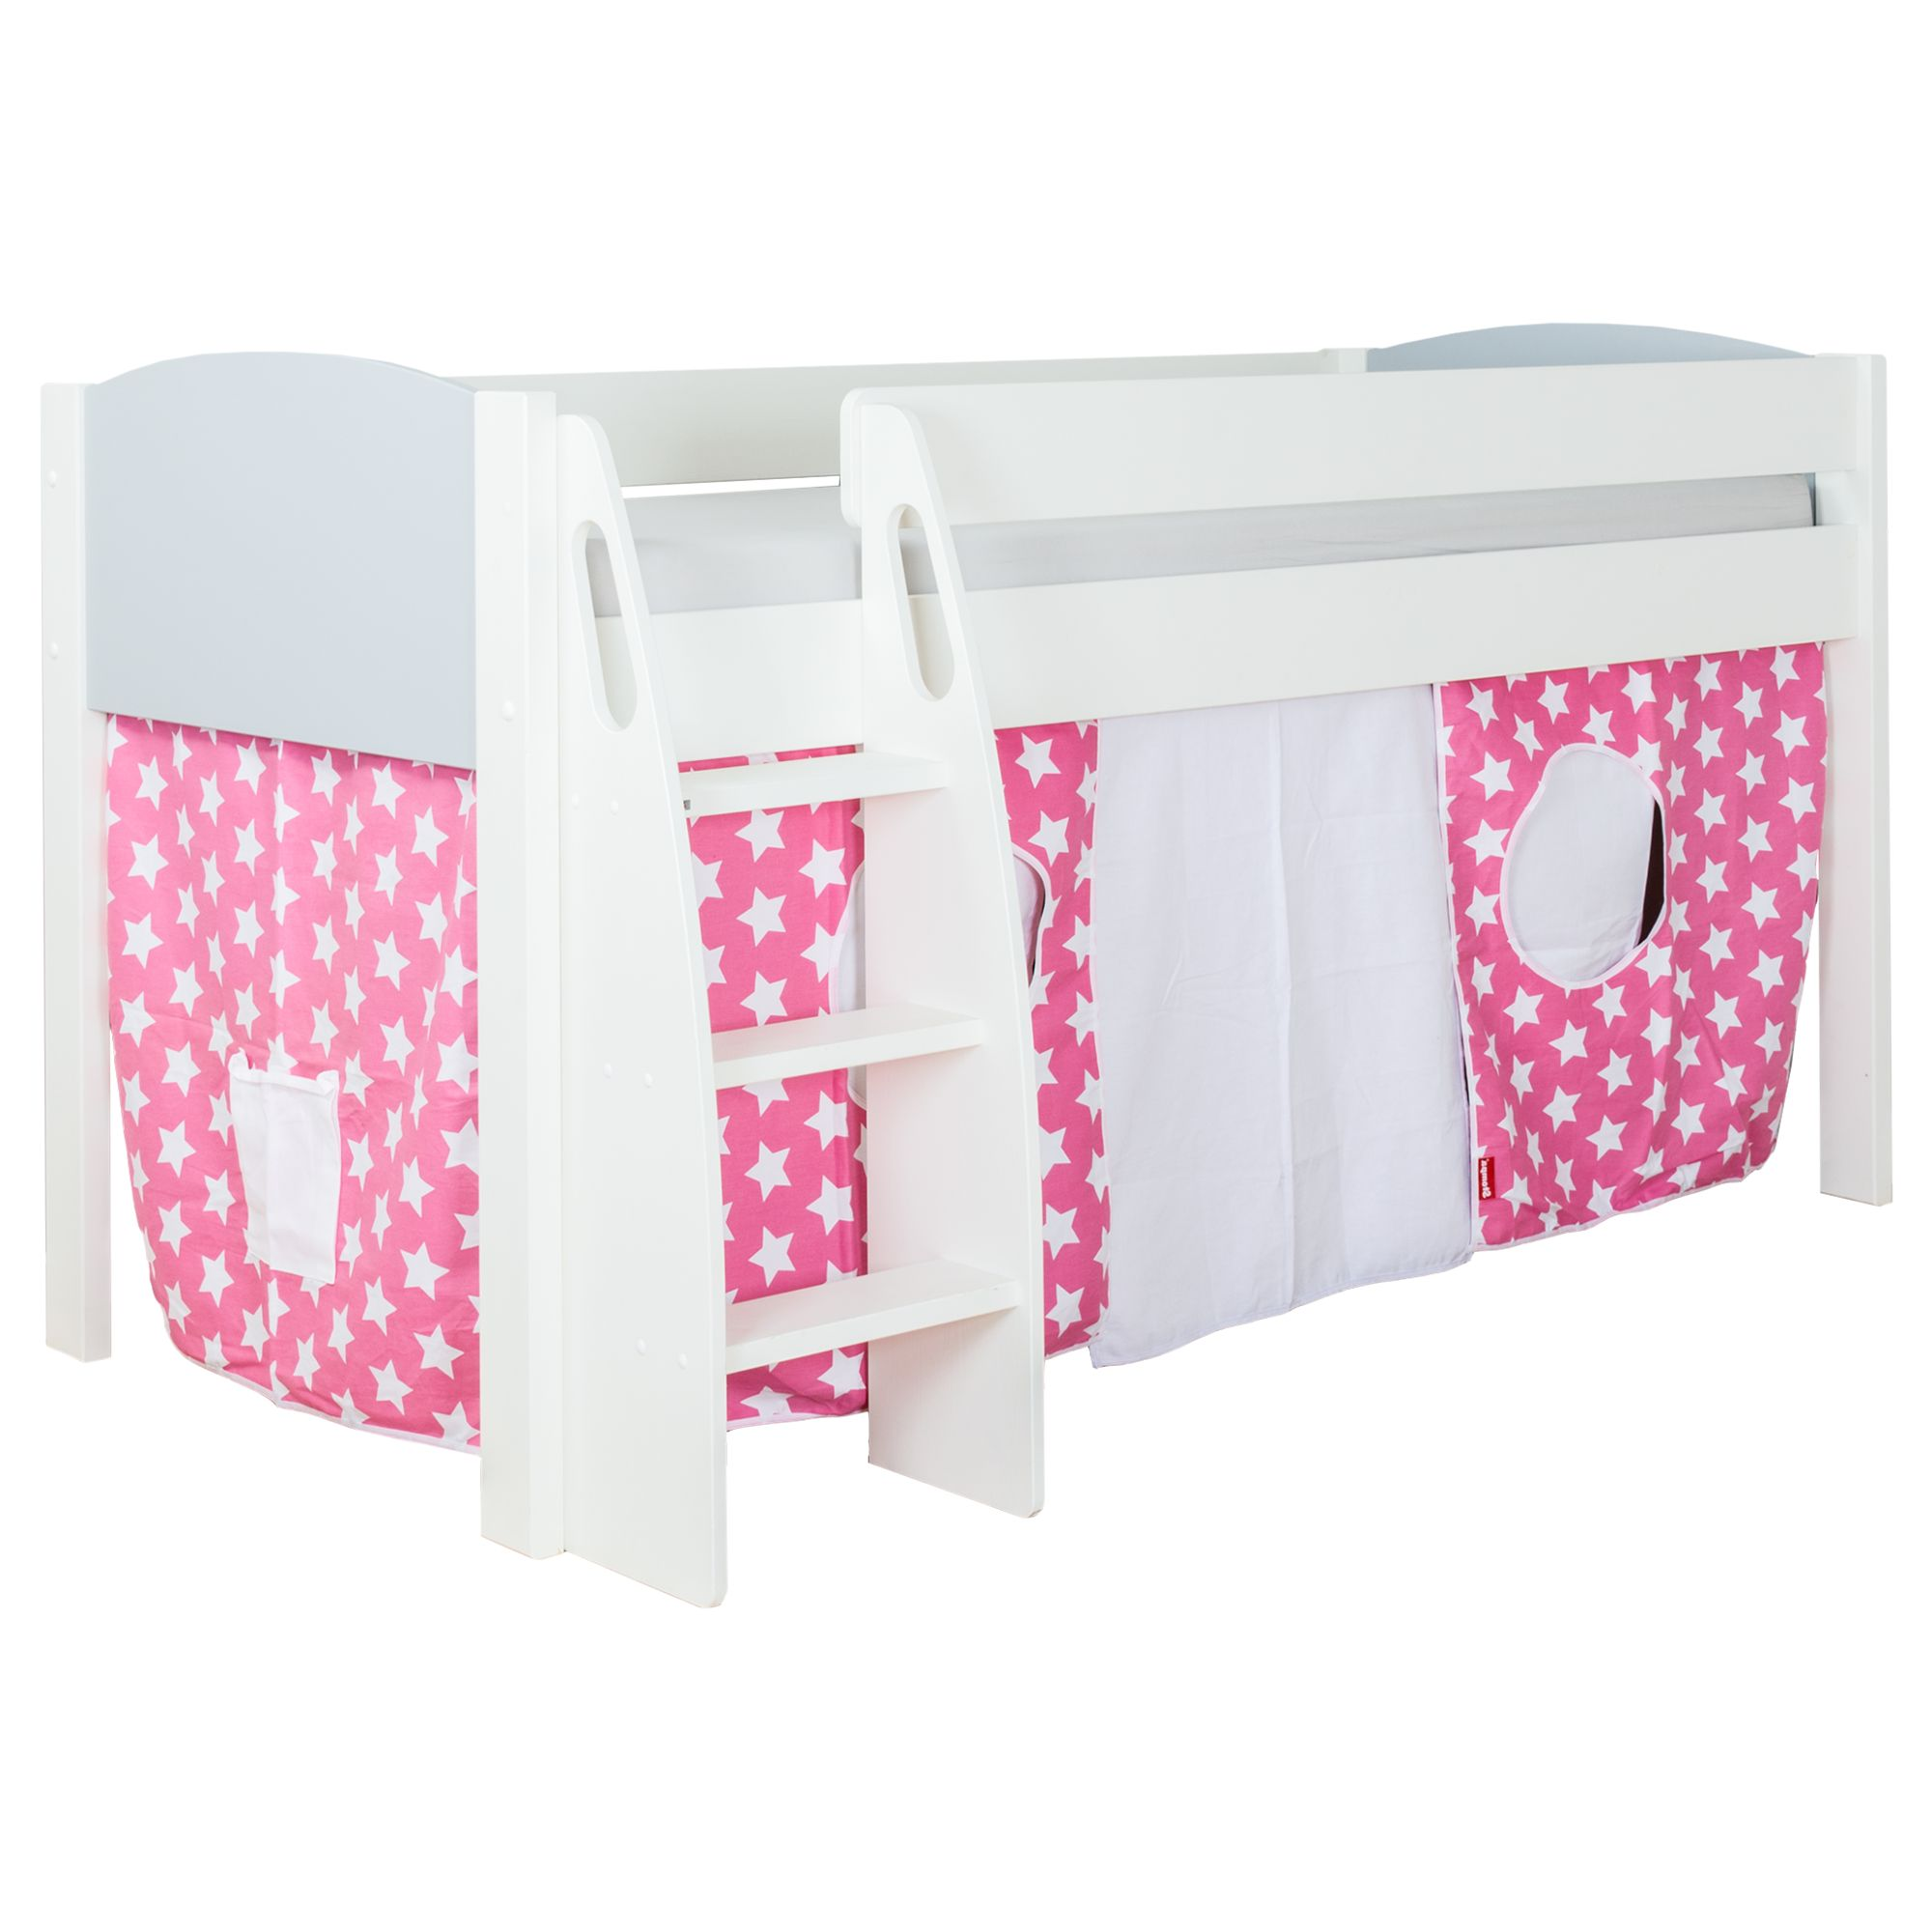 Stompa Stompa Uno S Plus Mid-Sleeper Bed with Grey Headboard and Star Print Tent